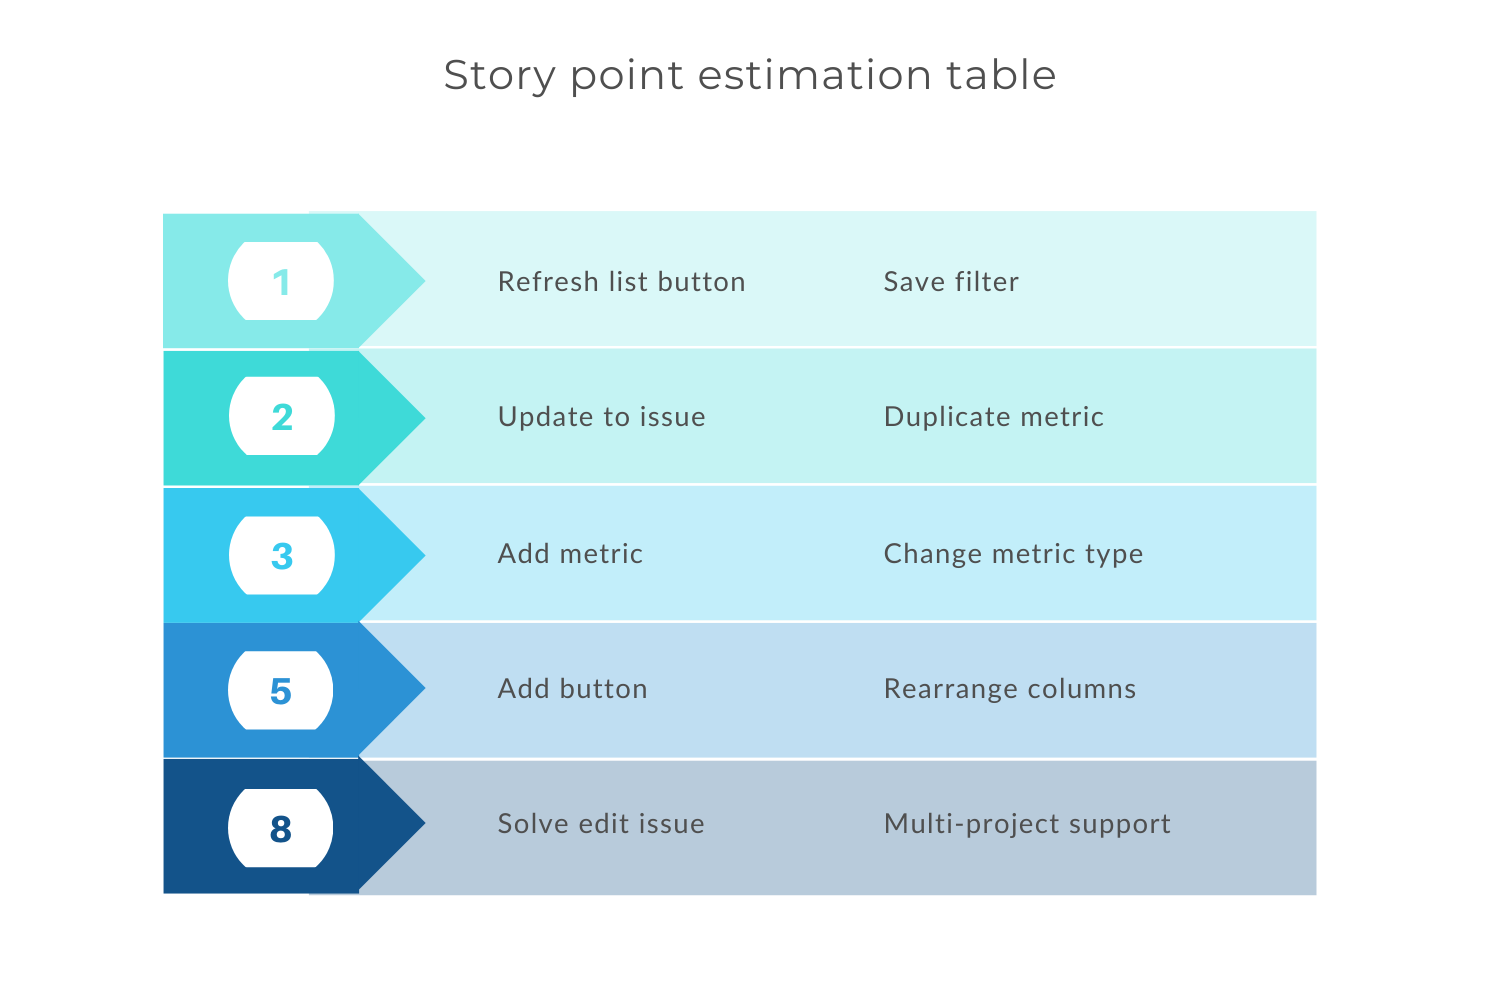 Storypoint estimation table